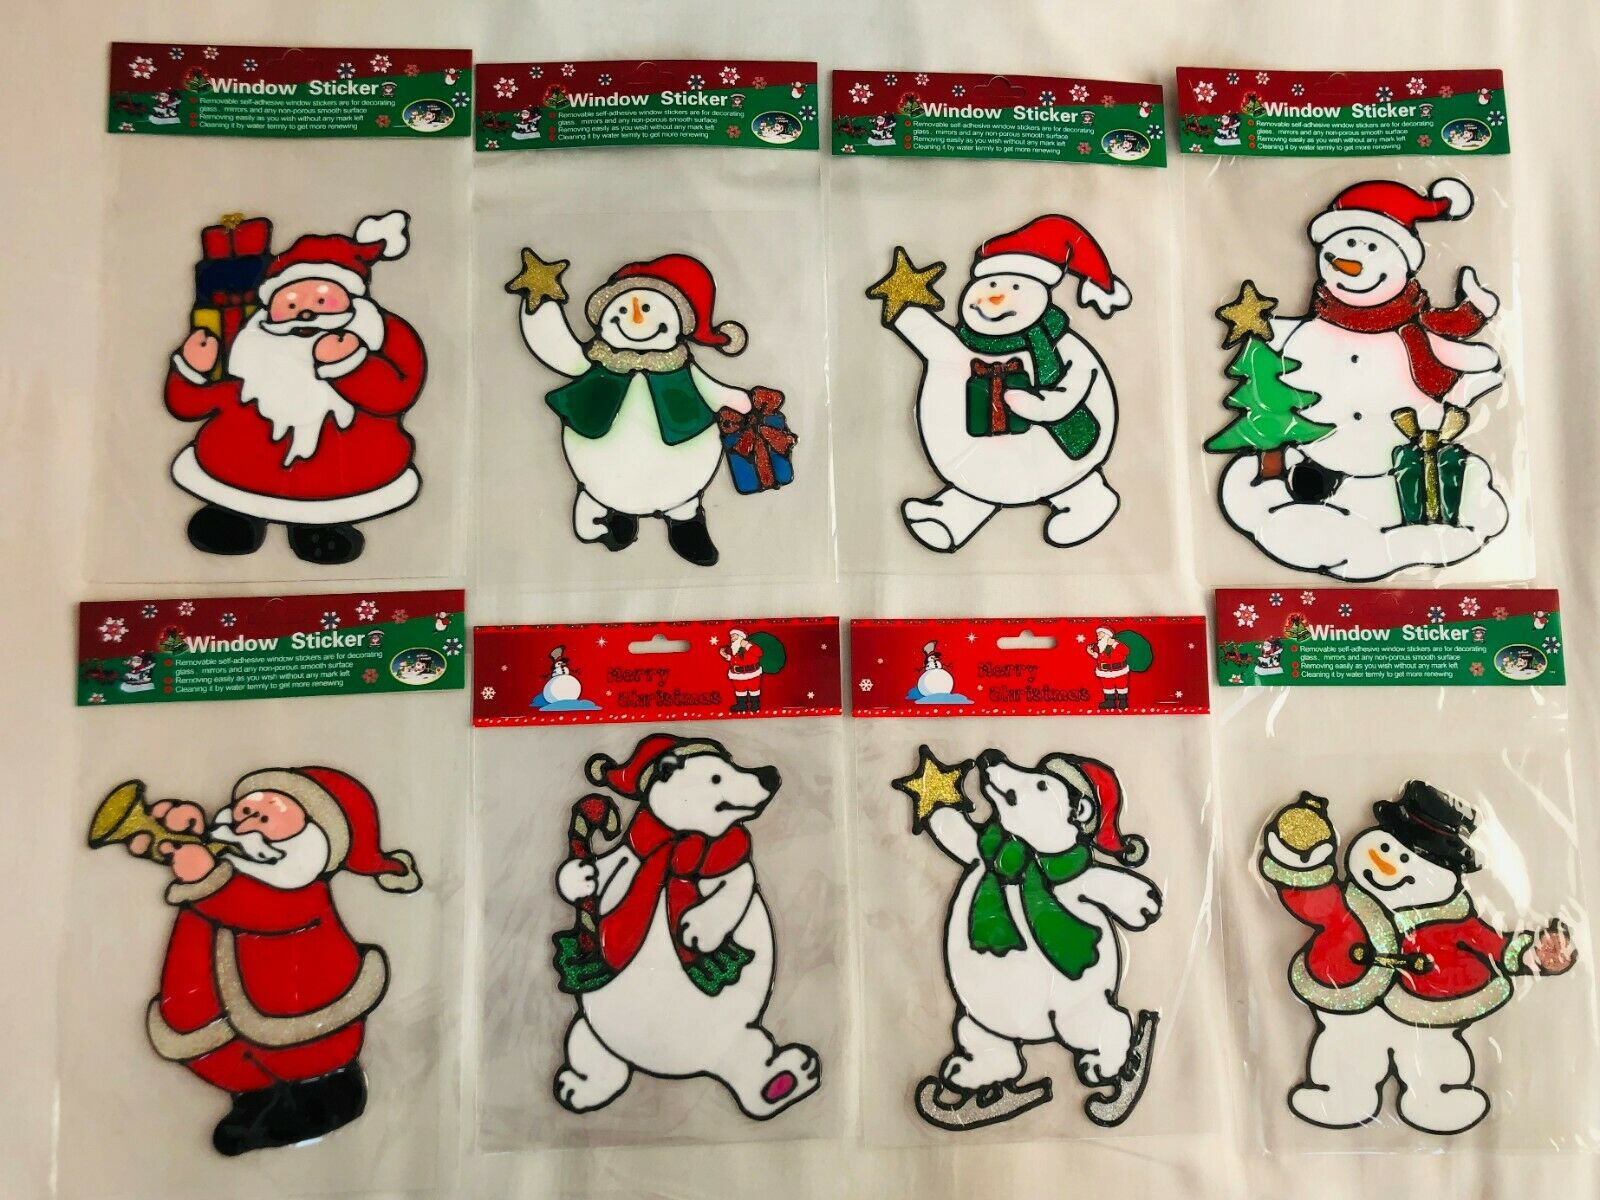 Home Decoration - Christmas Santa&Snowman Removable Window Gel Stickers Wall Art Home Decoration